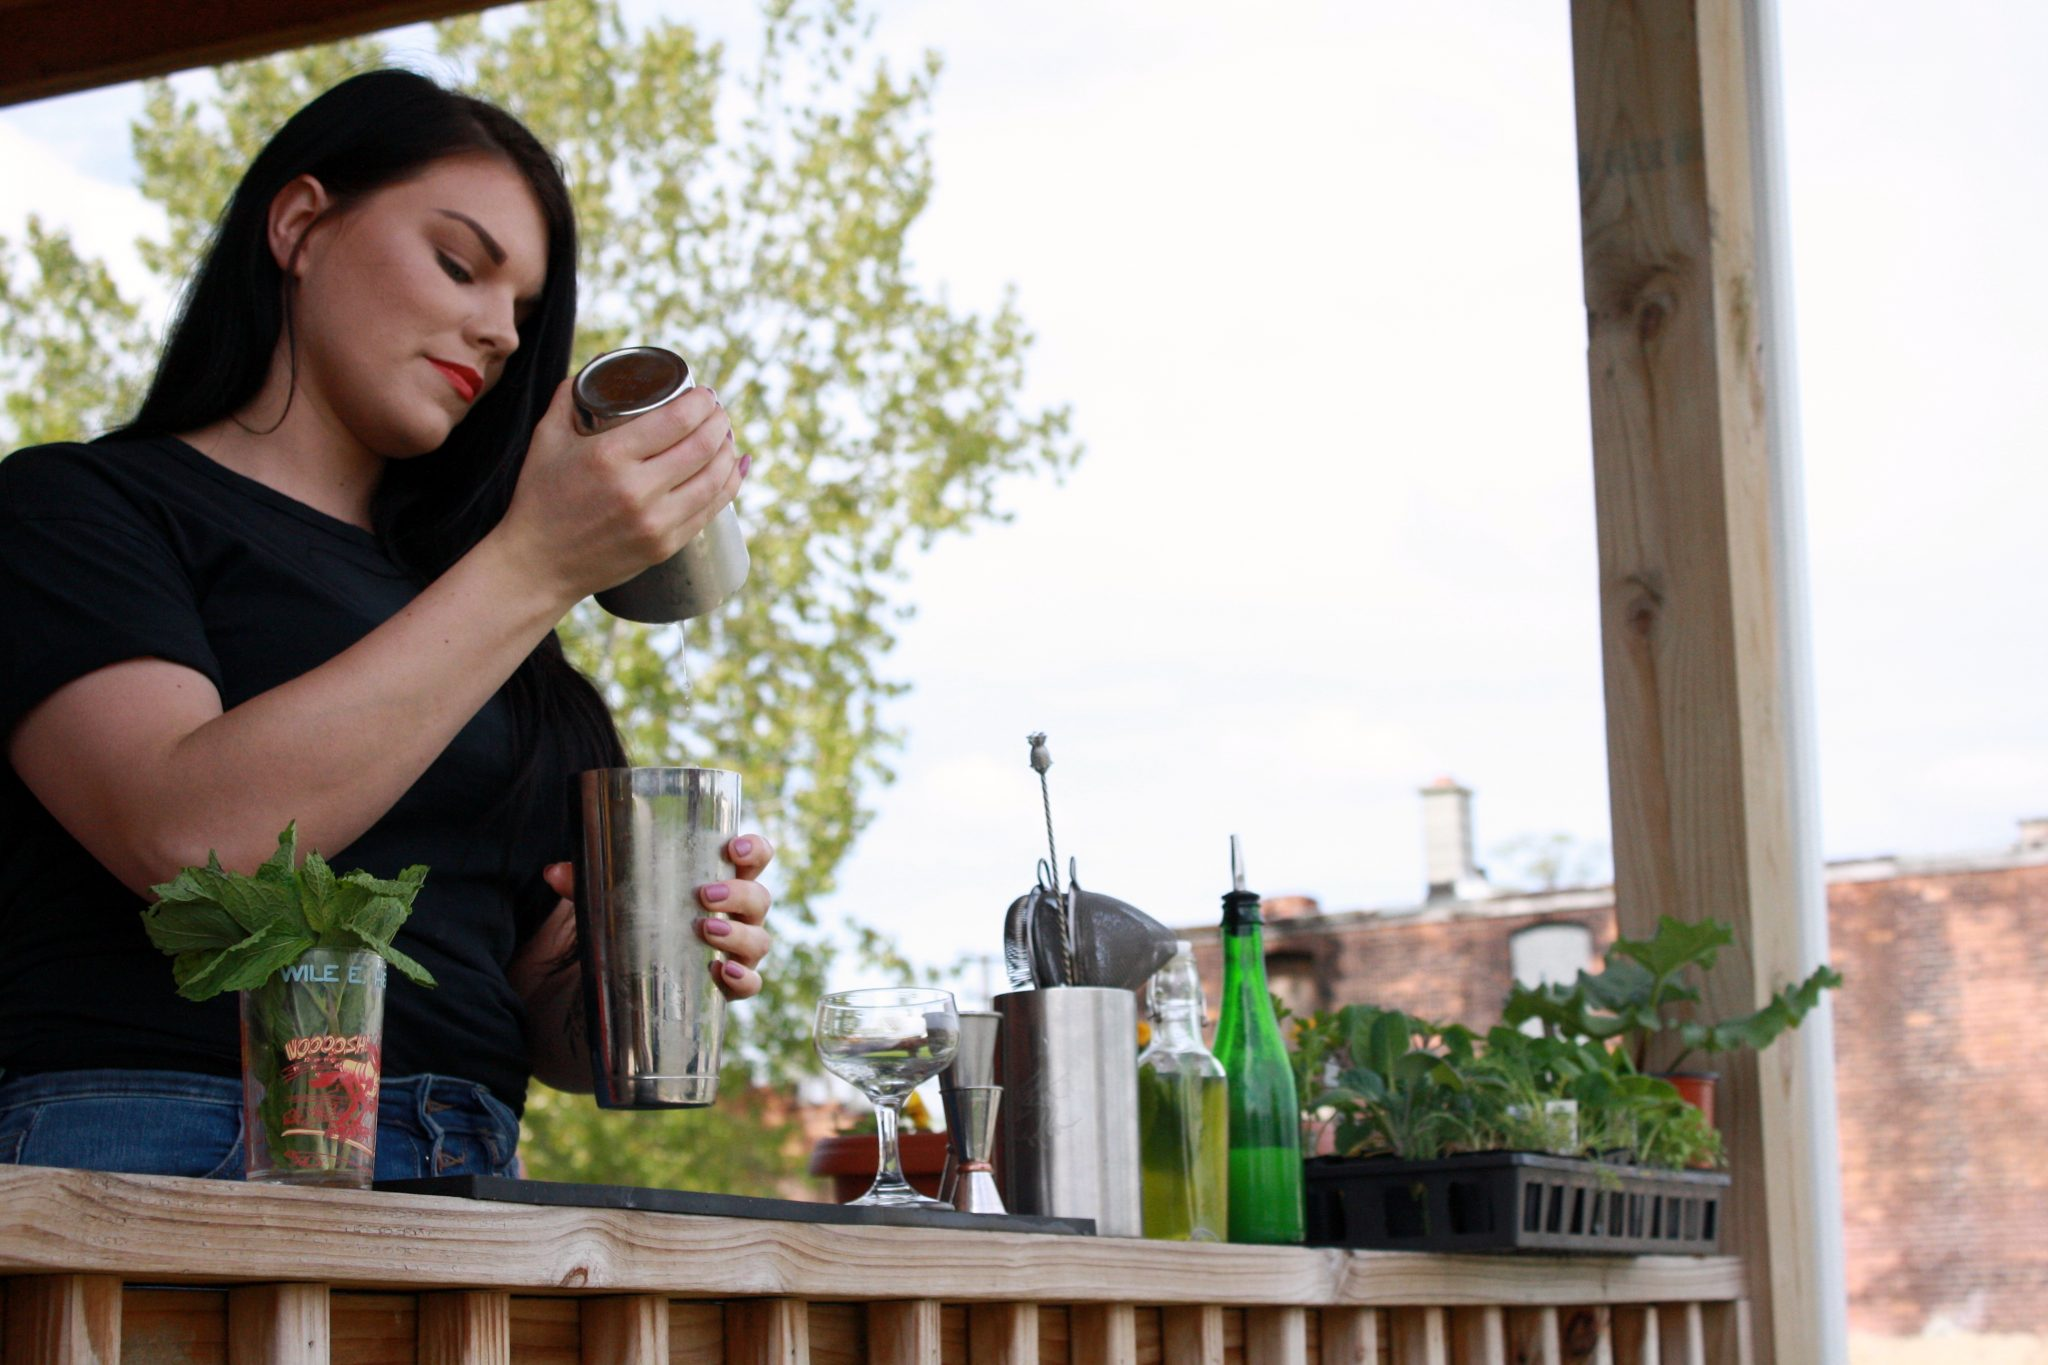 BARTENDER ALLISON EVERITT SHAKING A COCKTAIL ON THE FRONT PORCH OF HER DETROIT HOME